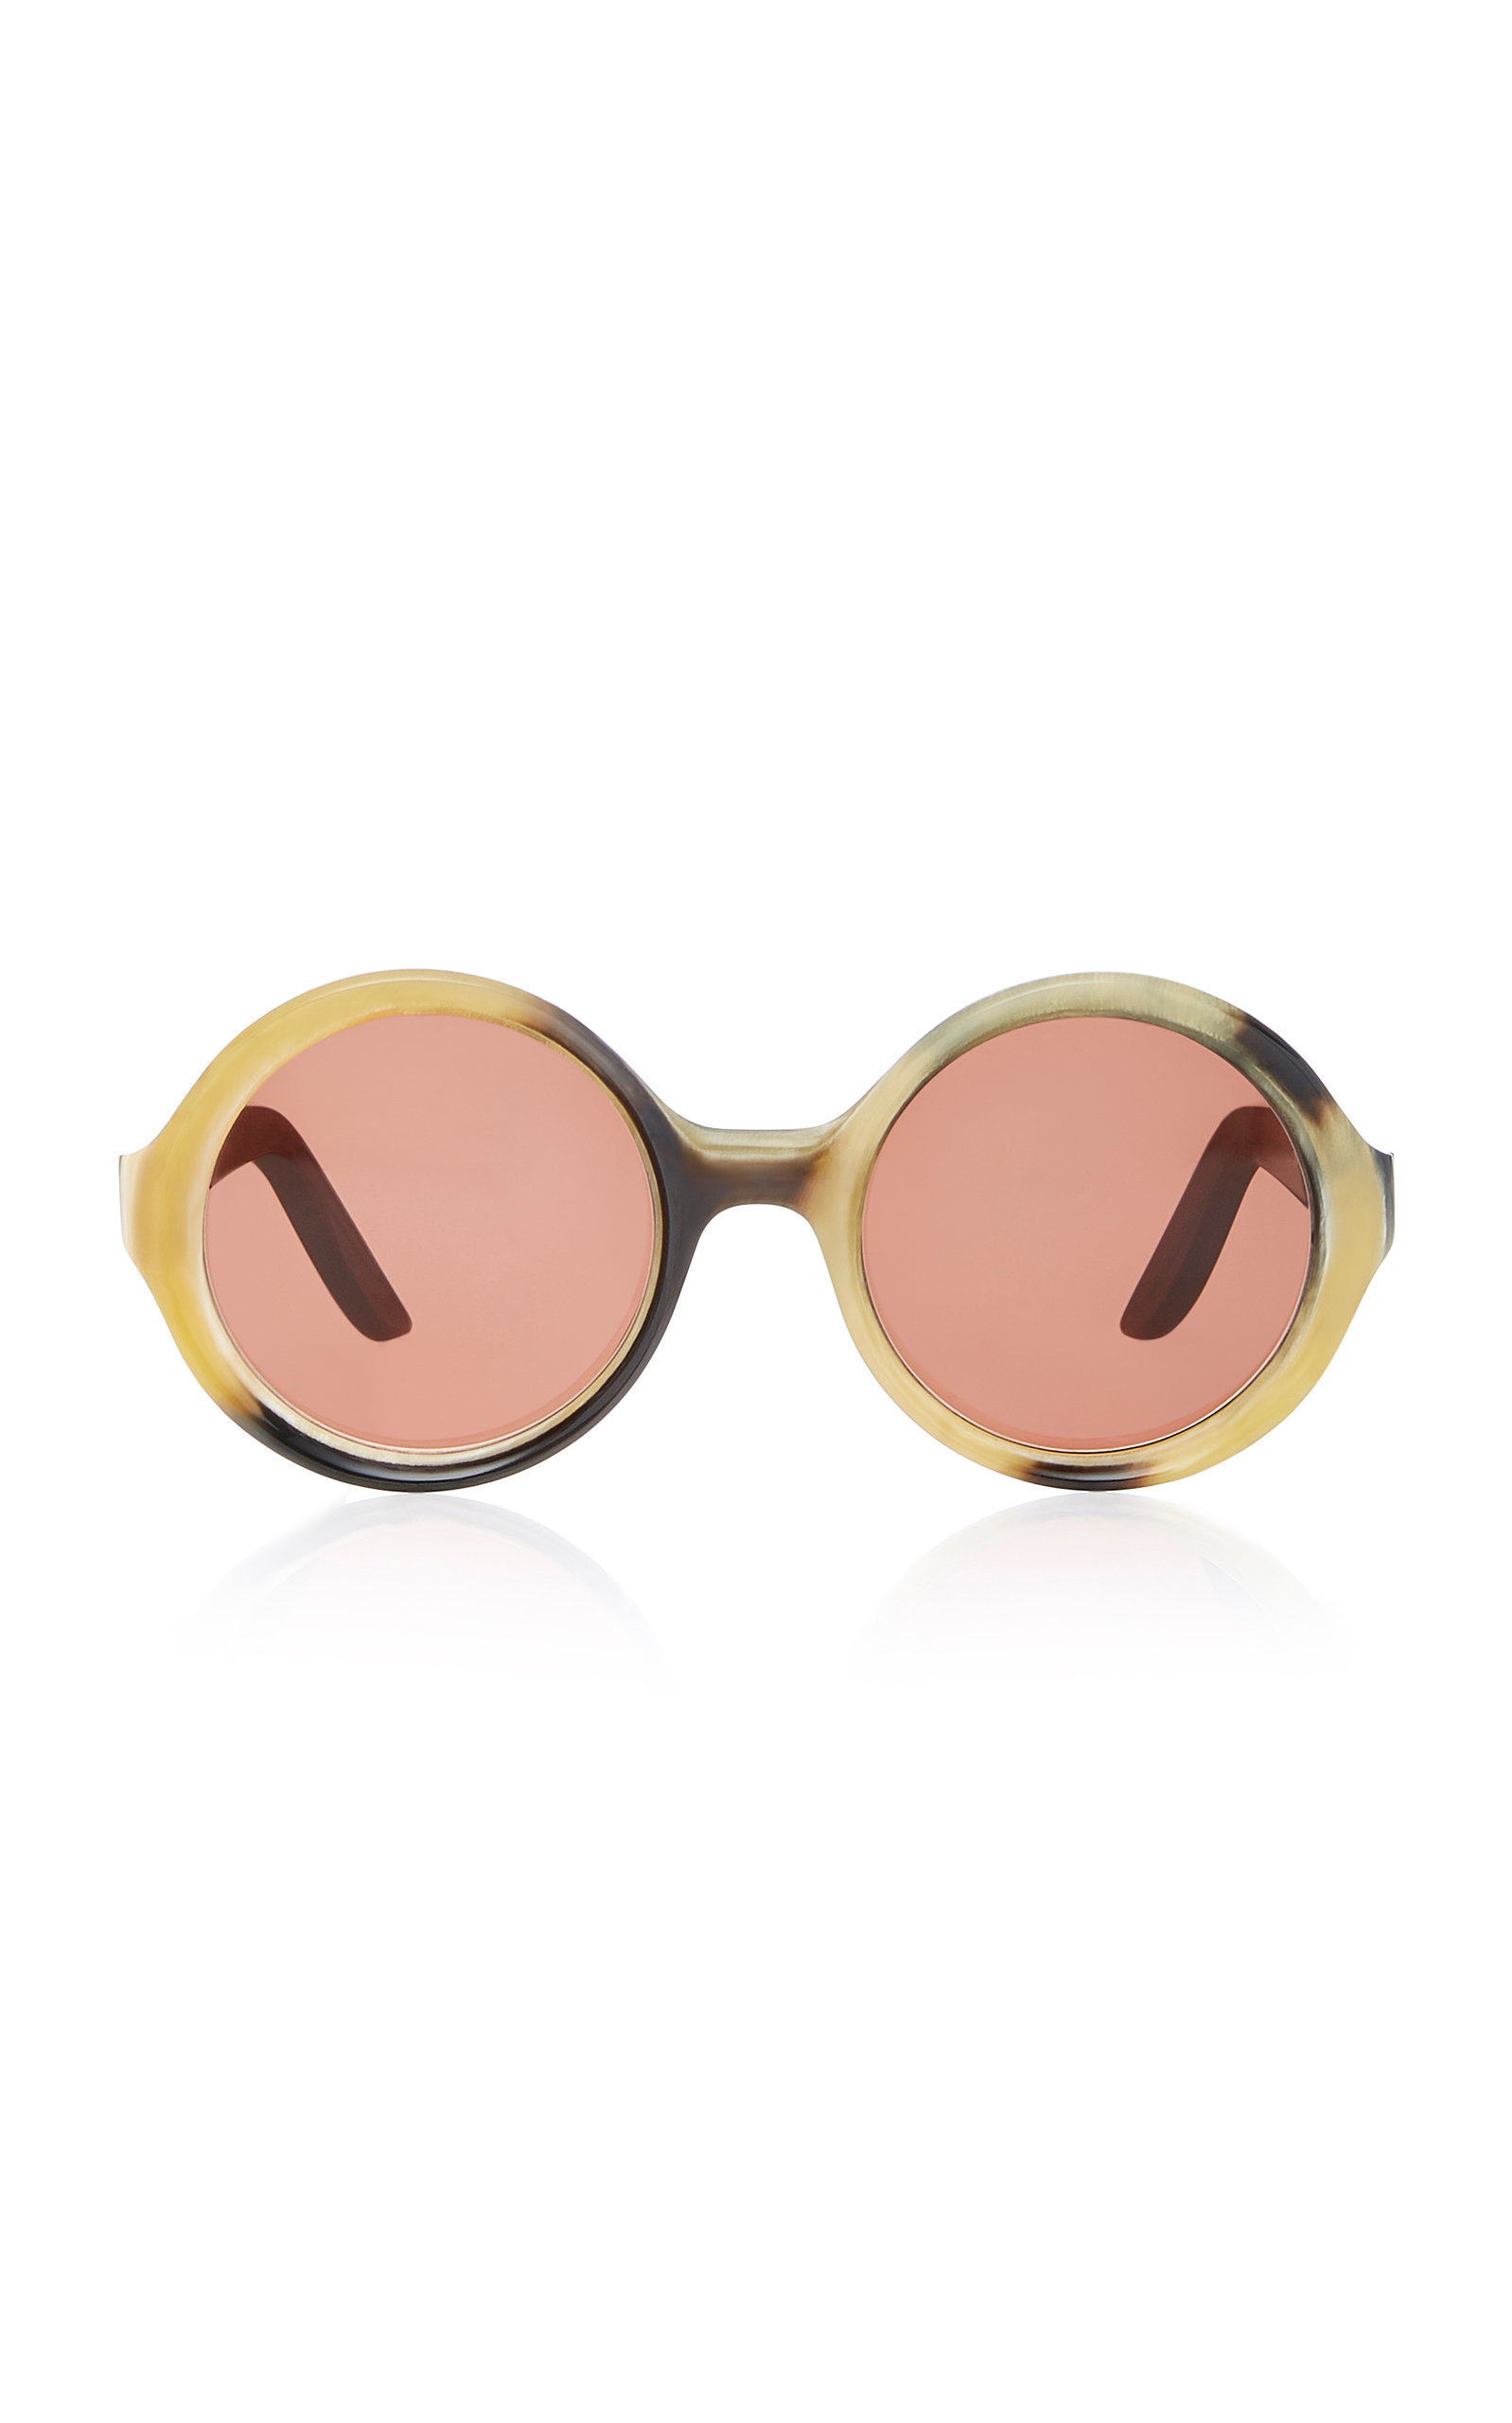 LAPIMA CAROLINA ROUND-FRAME ACETATE SUNGLASSES